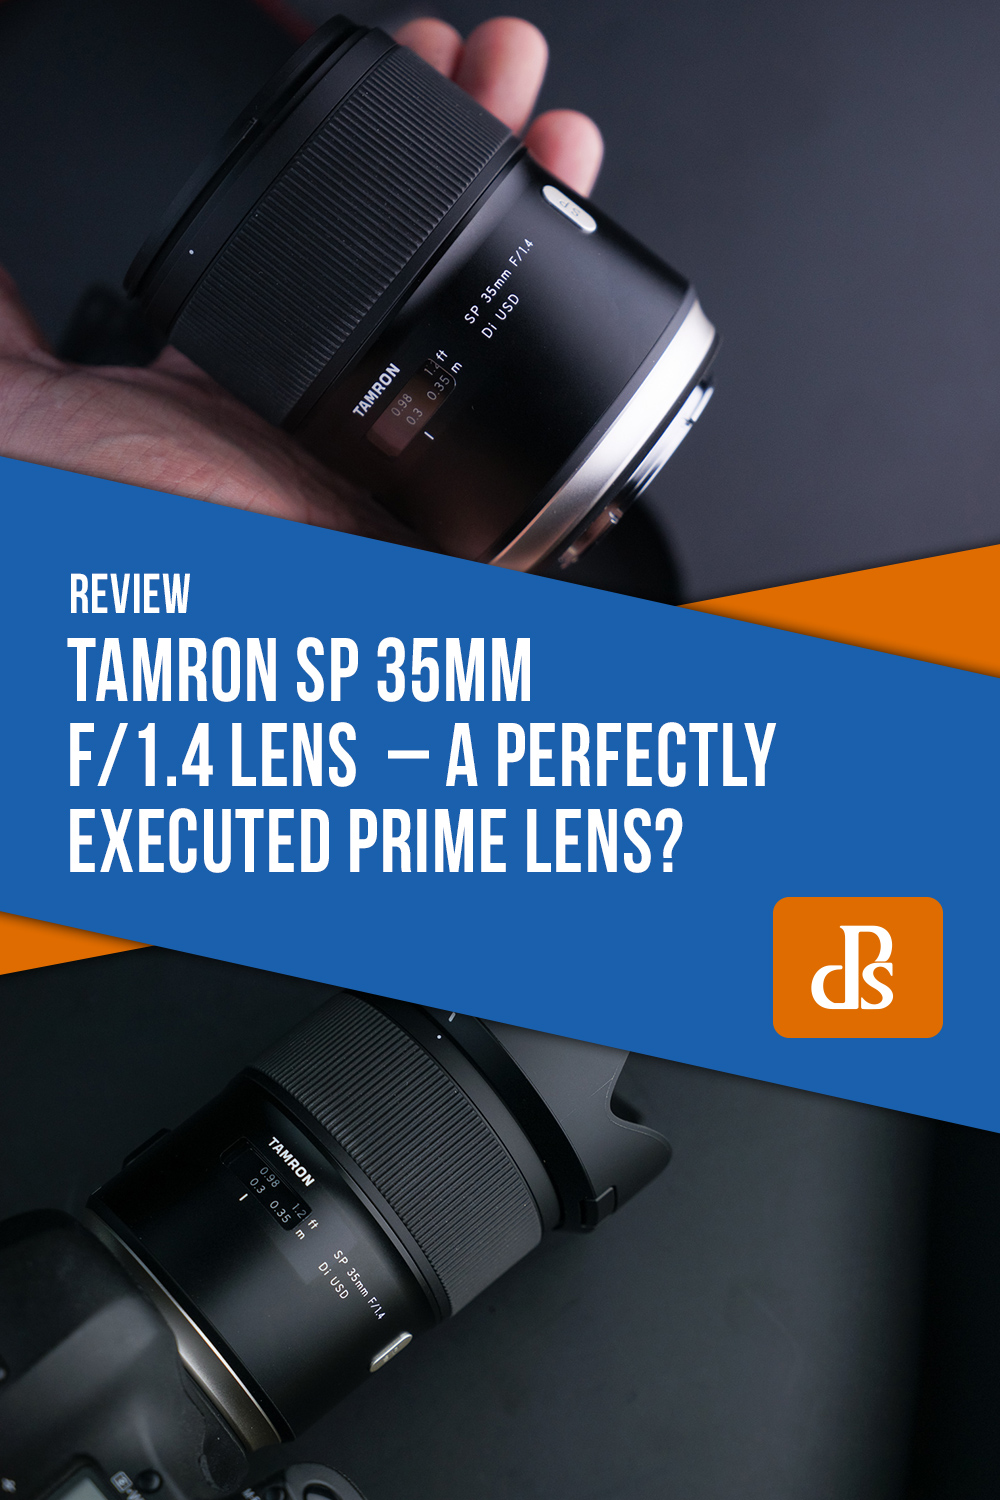 dps-tamron-sp-35mm-f-1-4-lens-review